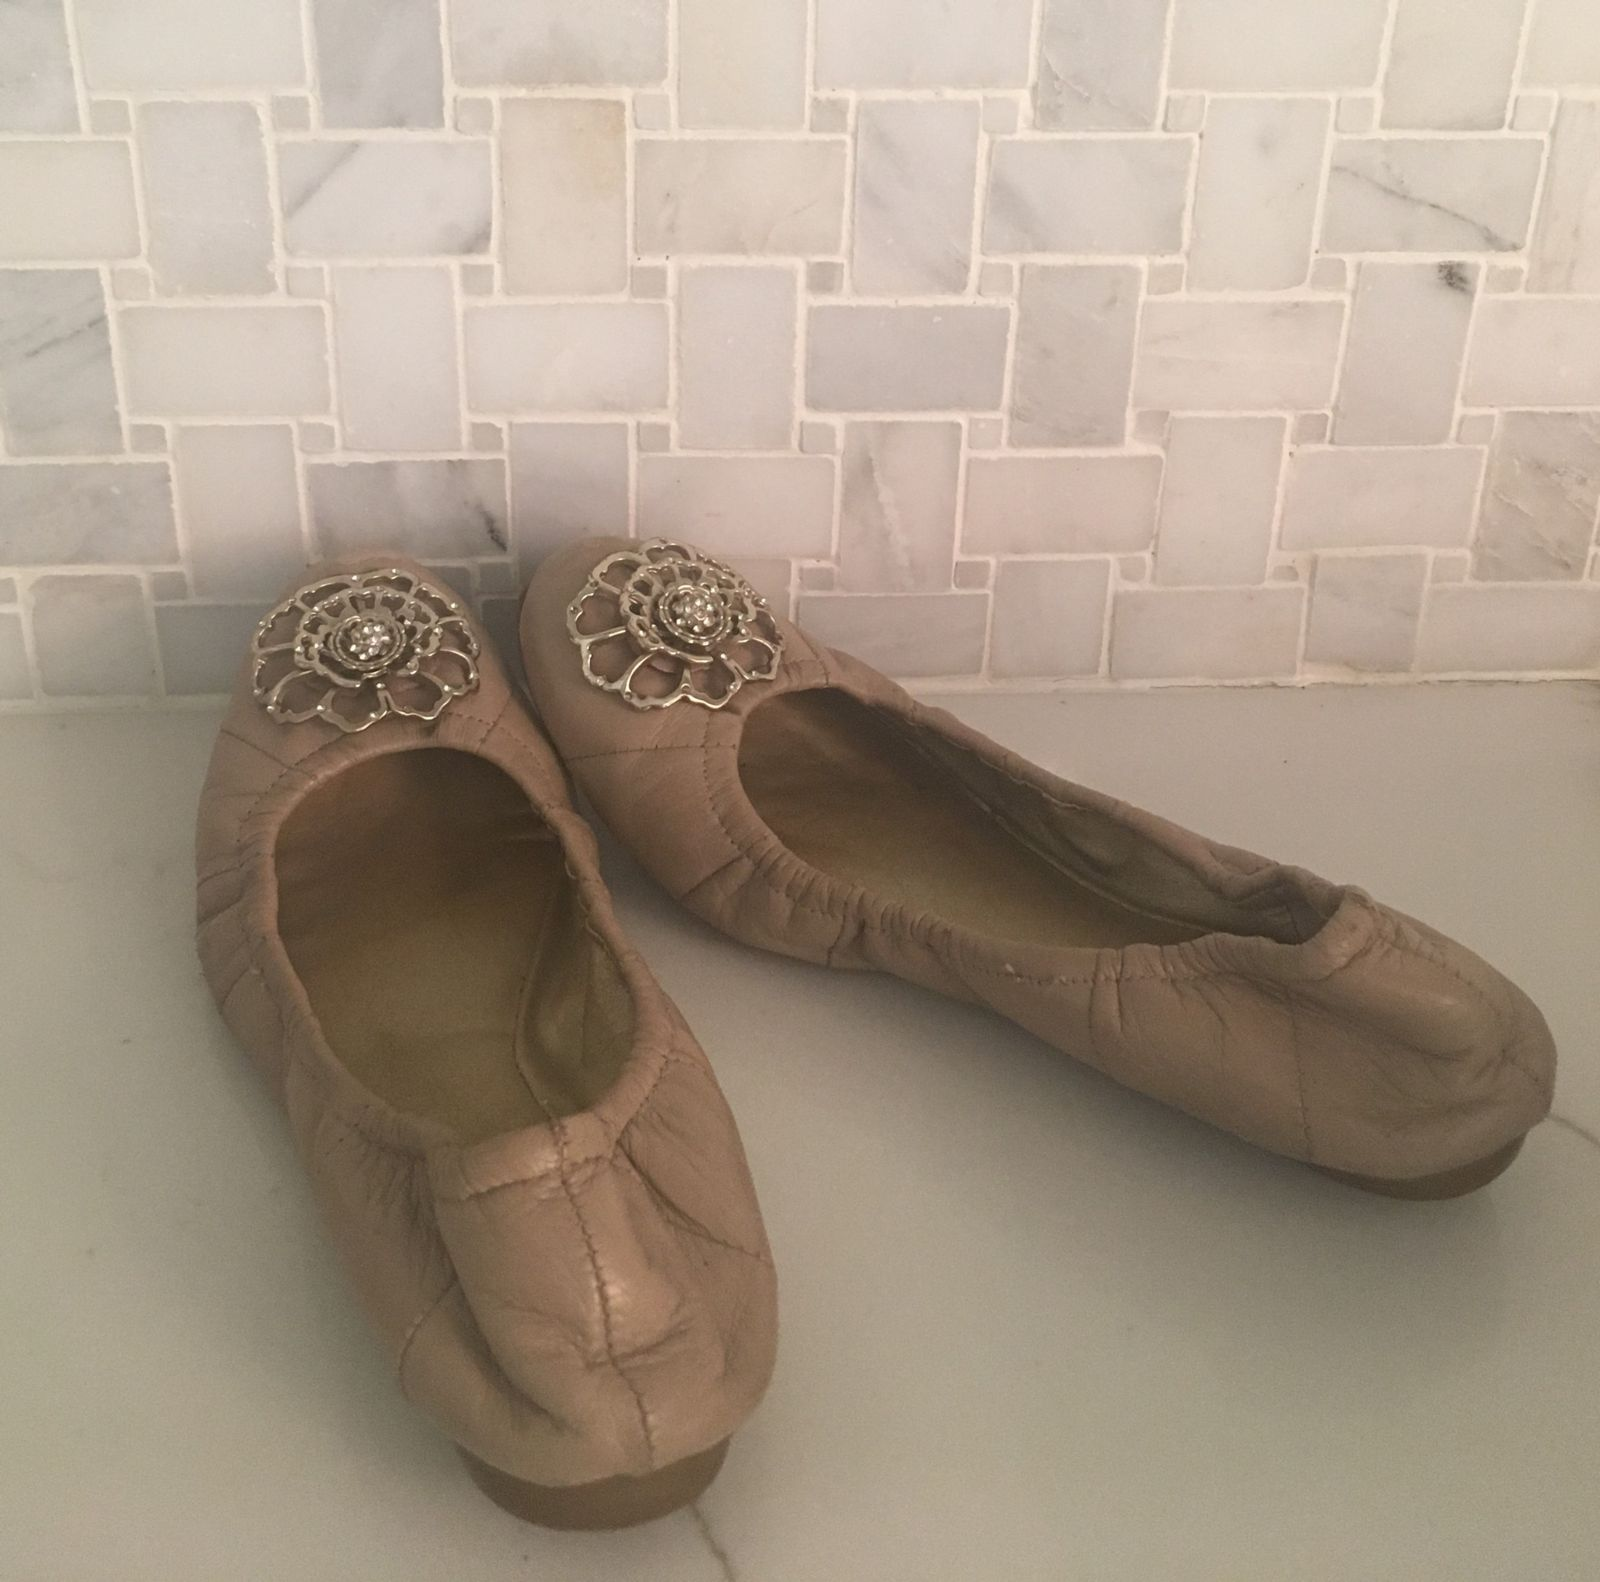 Traditional ballet flats offer little arch support and may lead to foot pain with all-day wearing.